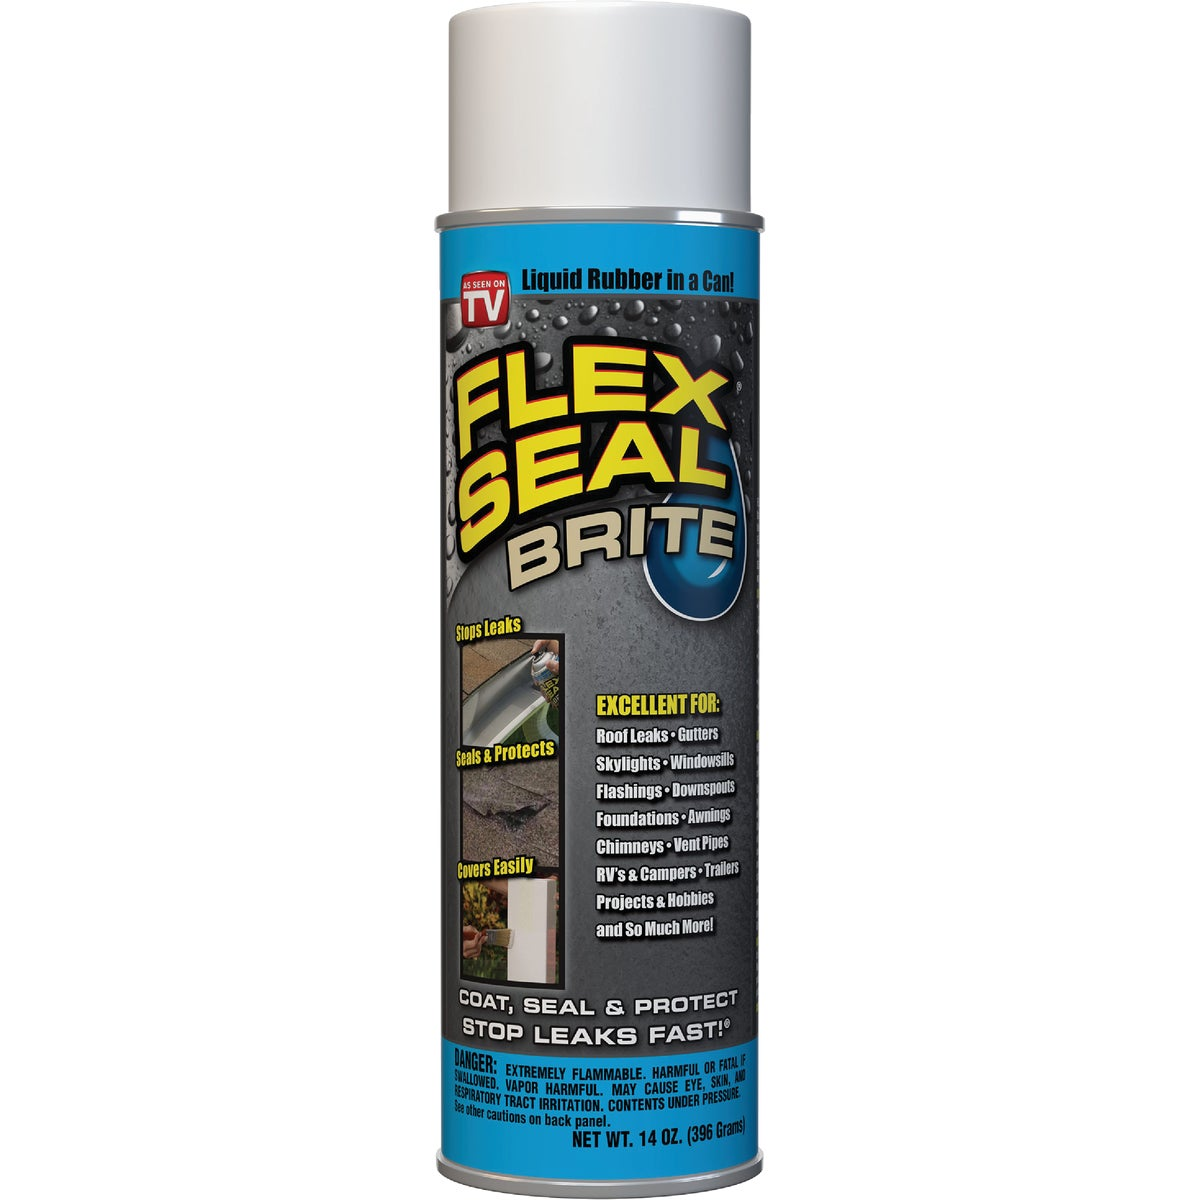 FLEX SEAL BRITE - FSB20 by Swift Response